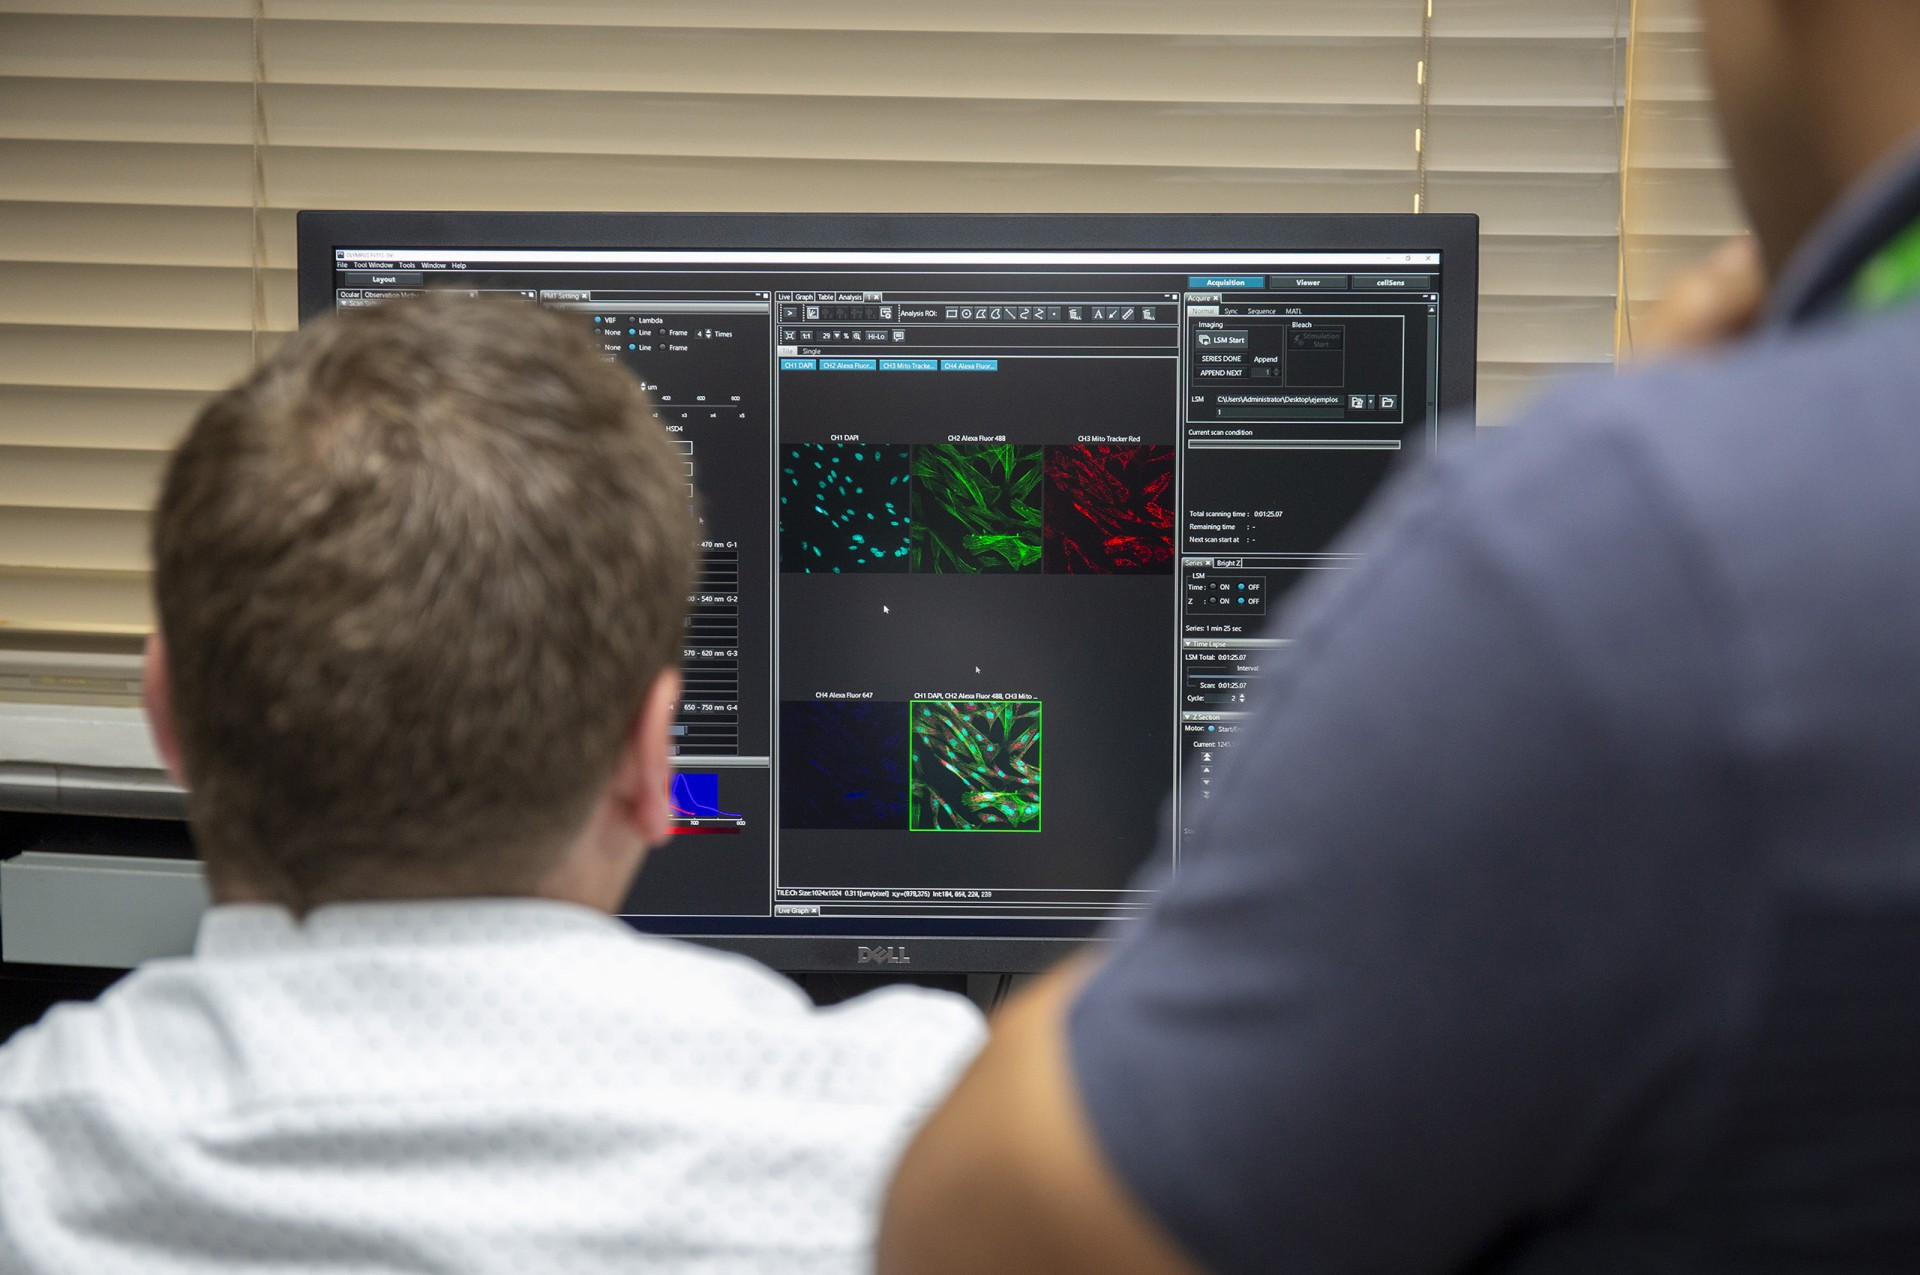 STRI has a new Laser scanning confocal microscope